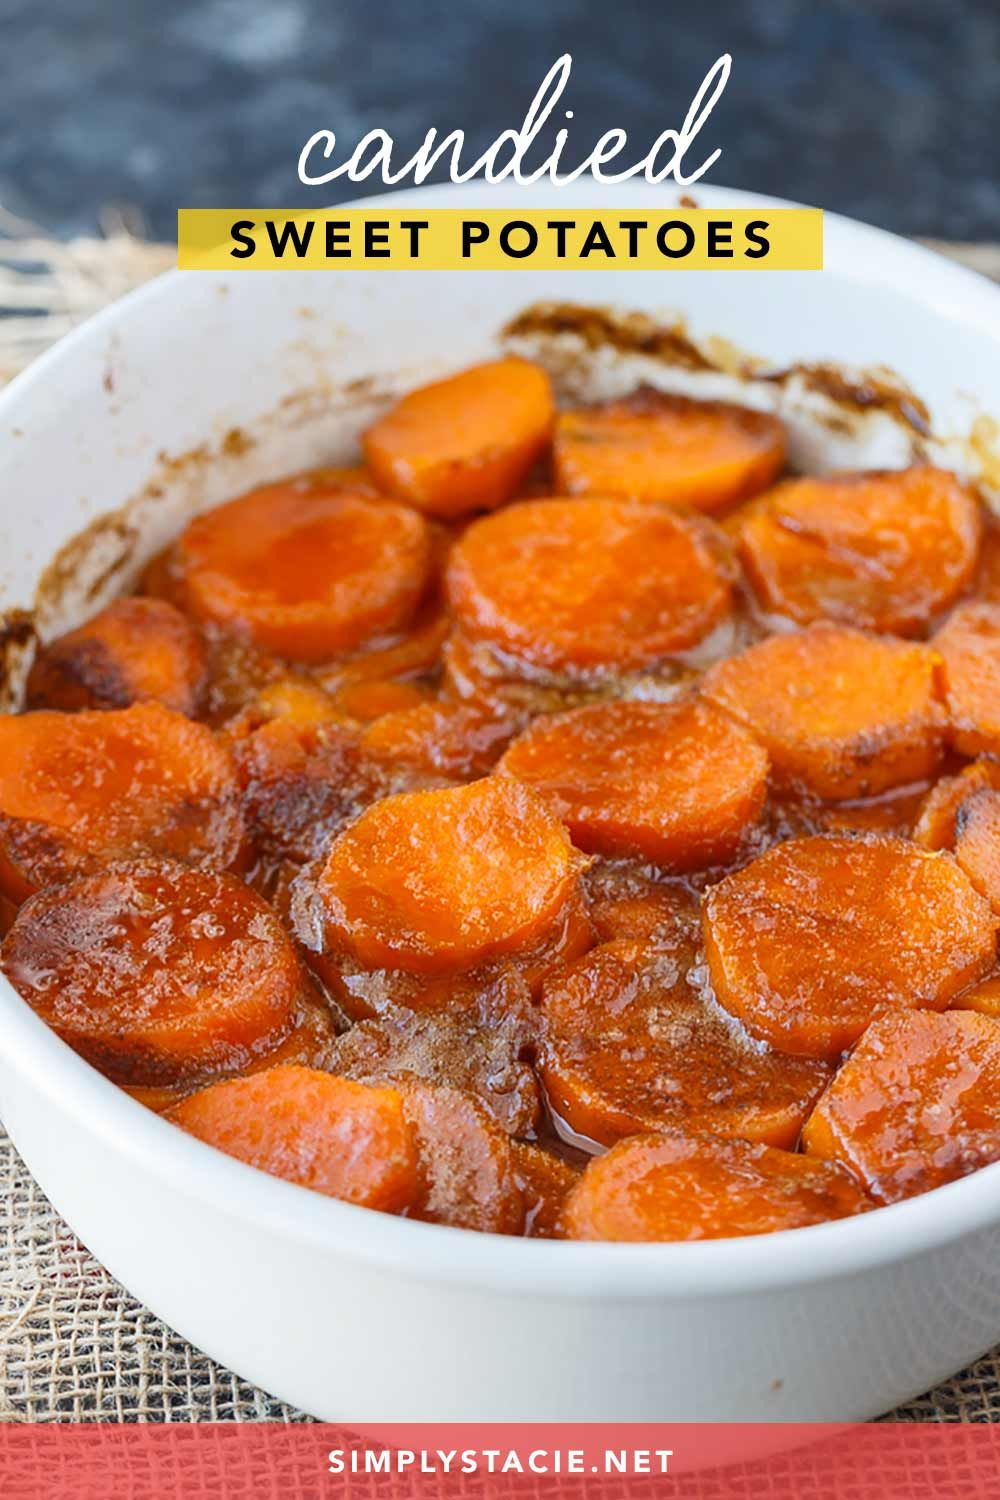 Candied Sweet Potatoes Recipe In 2020 Candied Sweet Potatoes Canned Sweet Potato Recipes Canning Sweet Potatoes